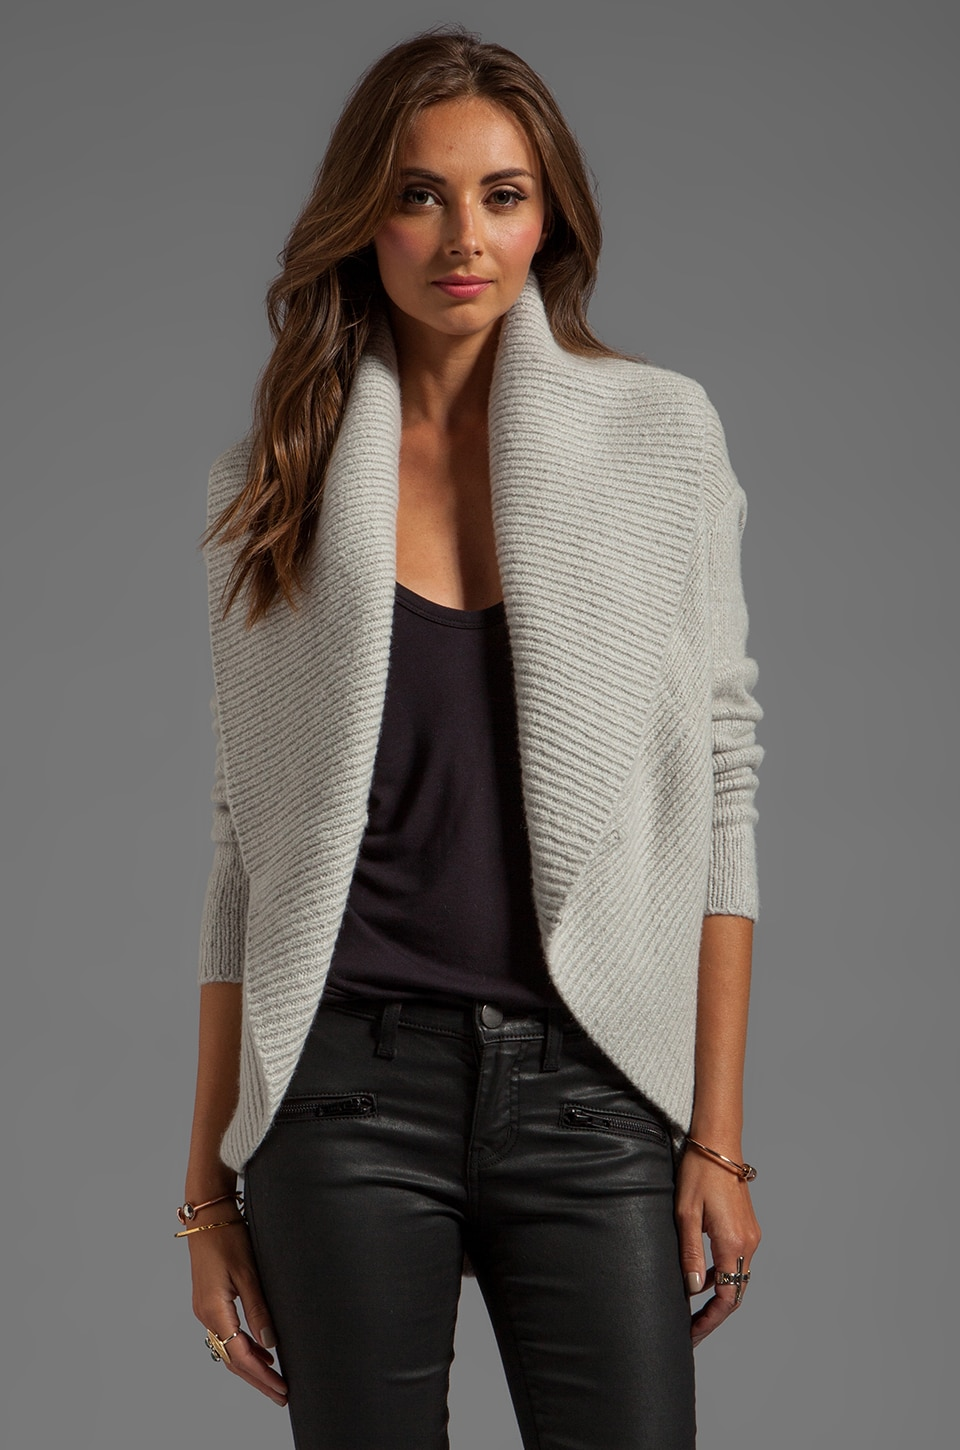 Vince Circle Cardigan in Pebblestone